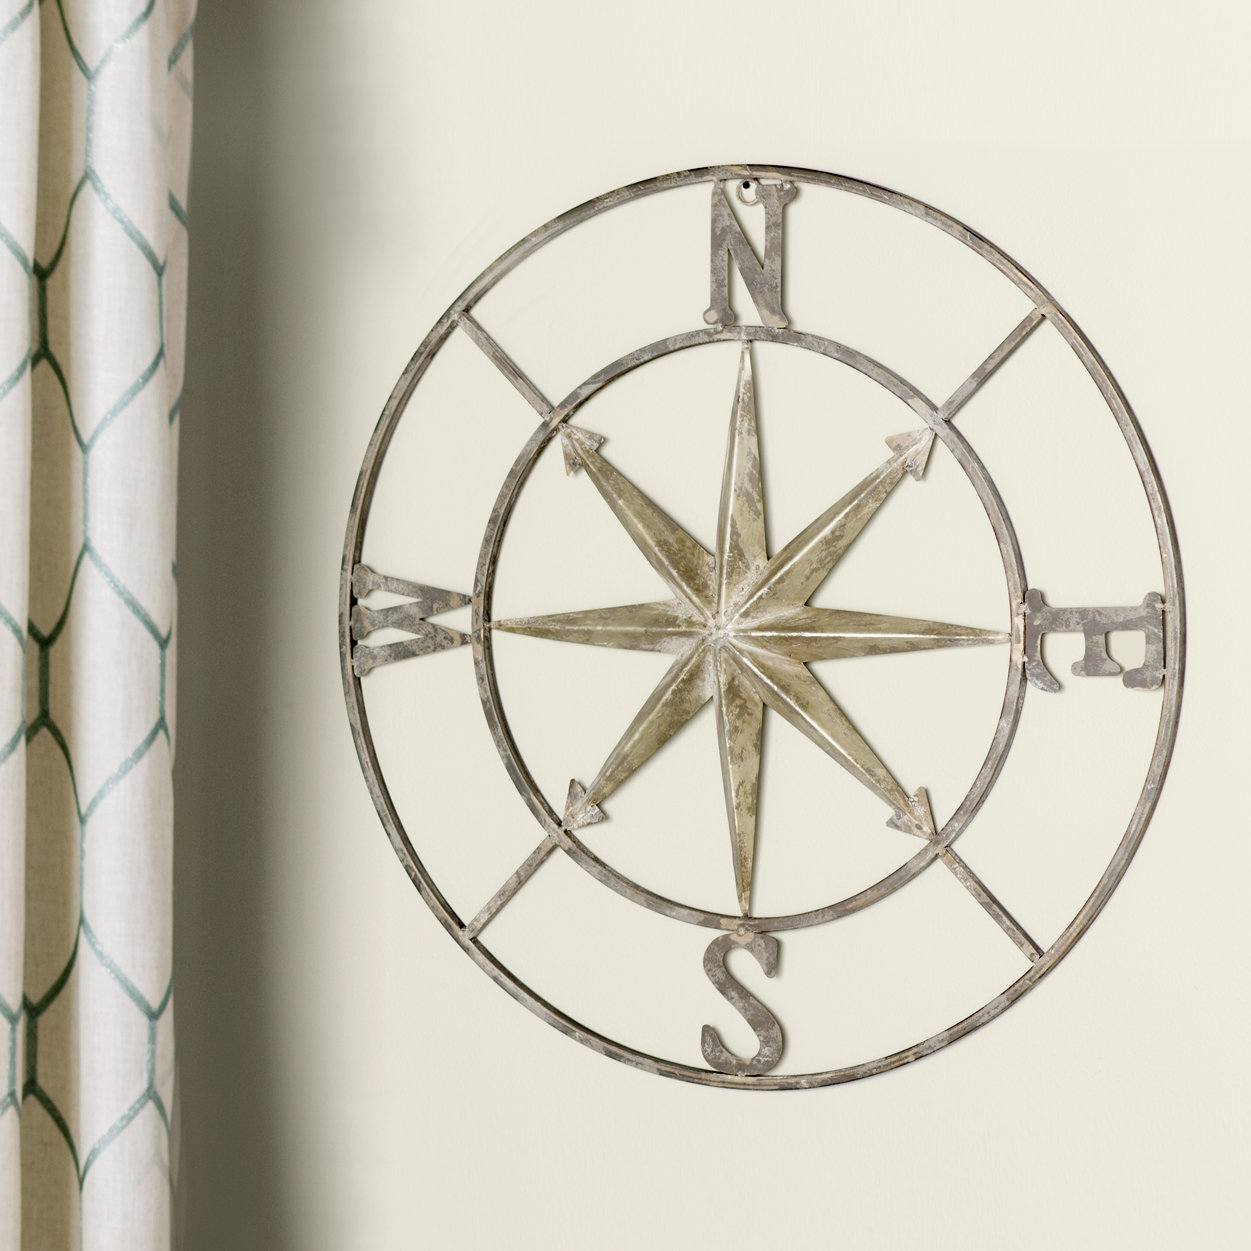 Hallway Wall Decor | Wayfair.ca within Round Compass Wall Decor (Image 13 of 30)